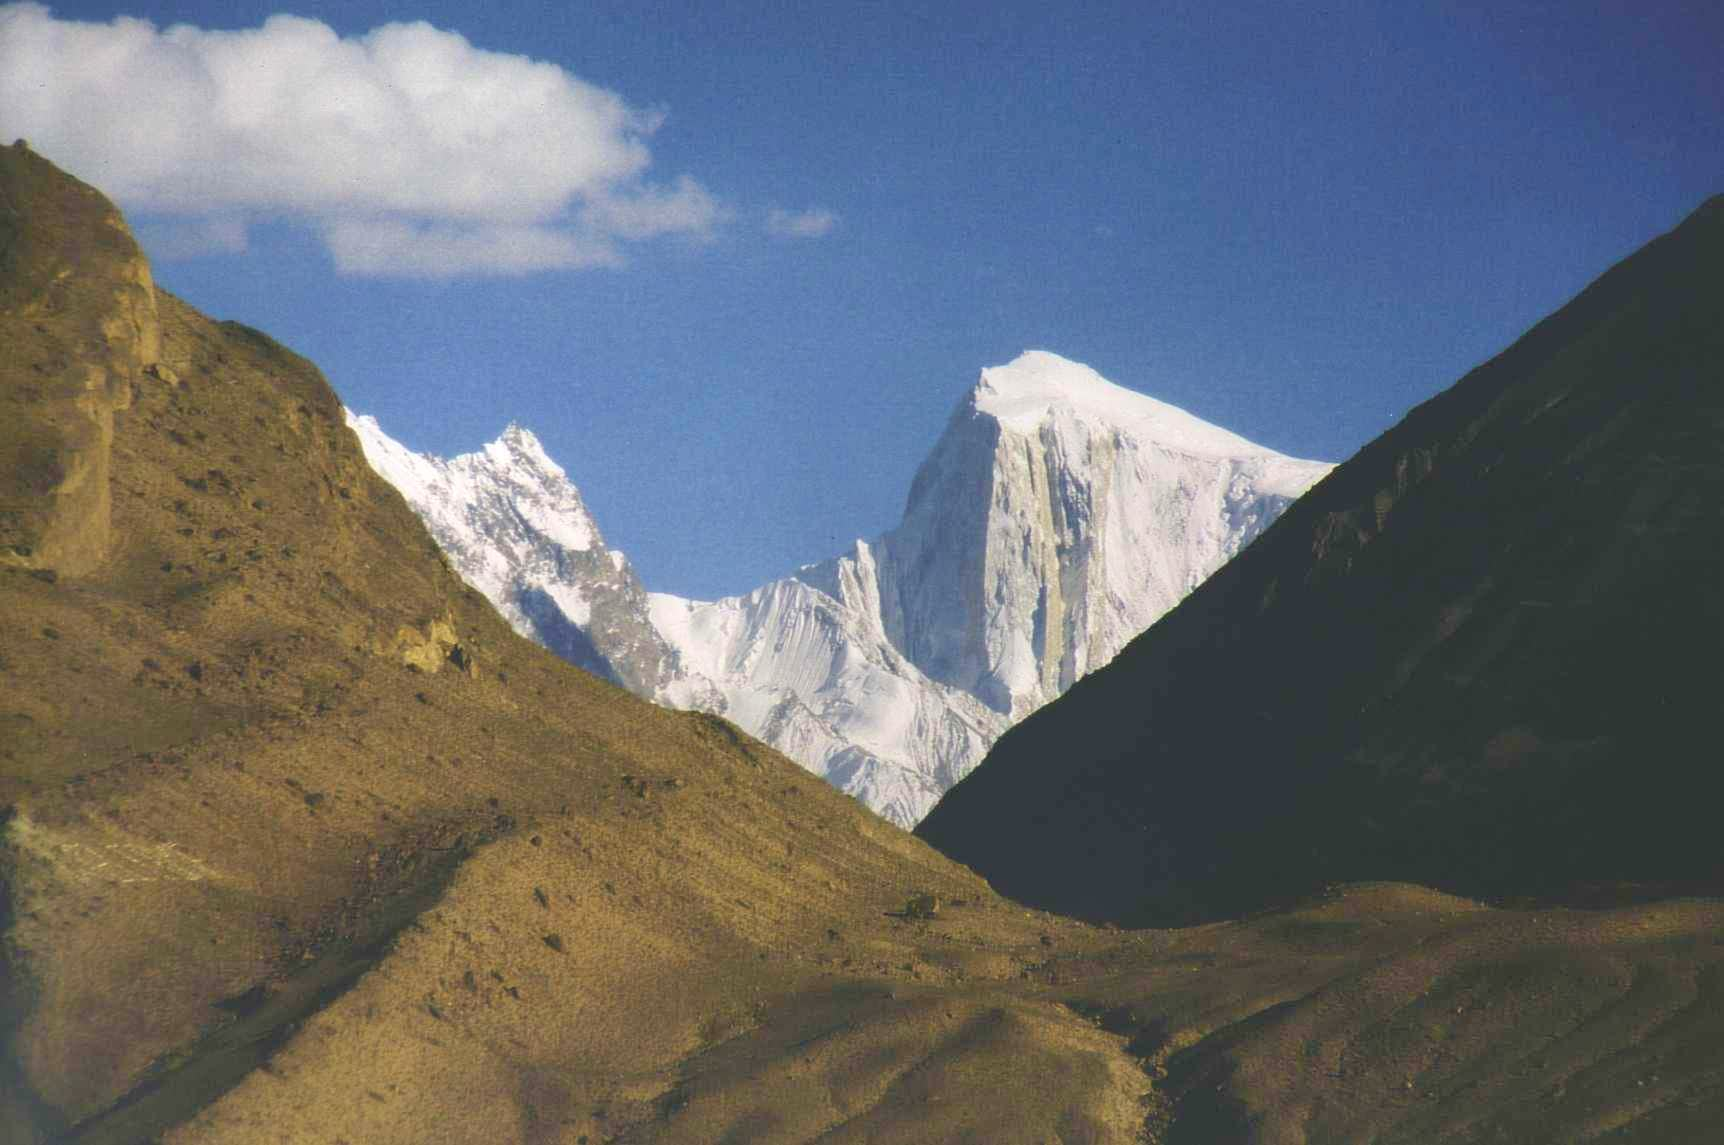 Spantik Karakoram Expedition